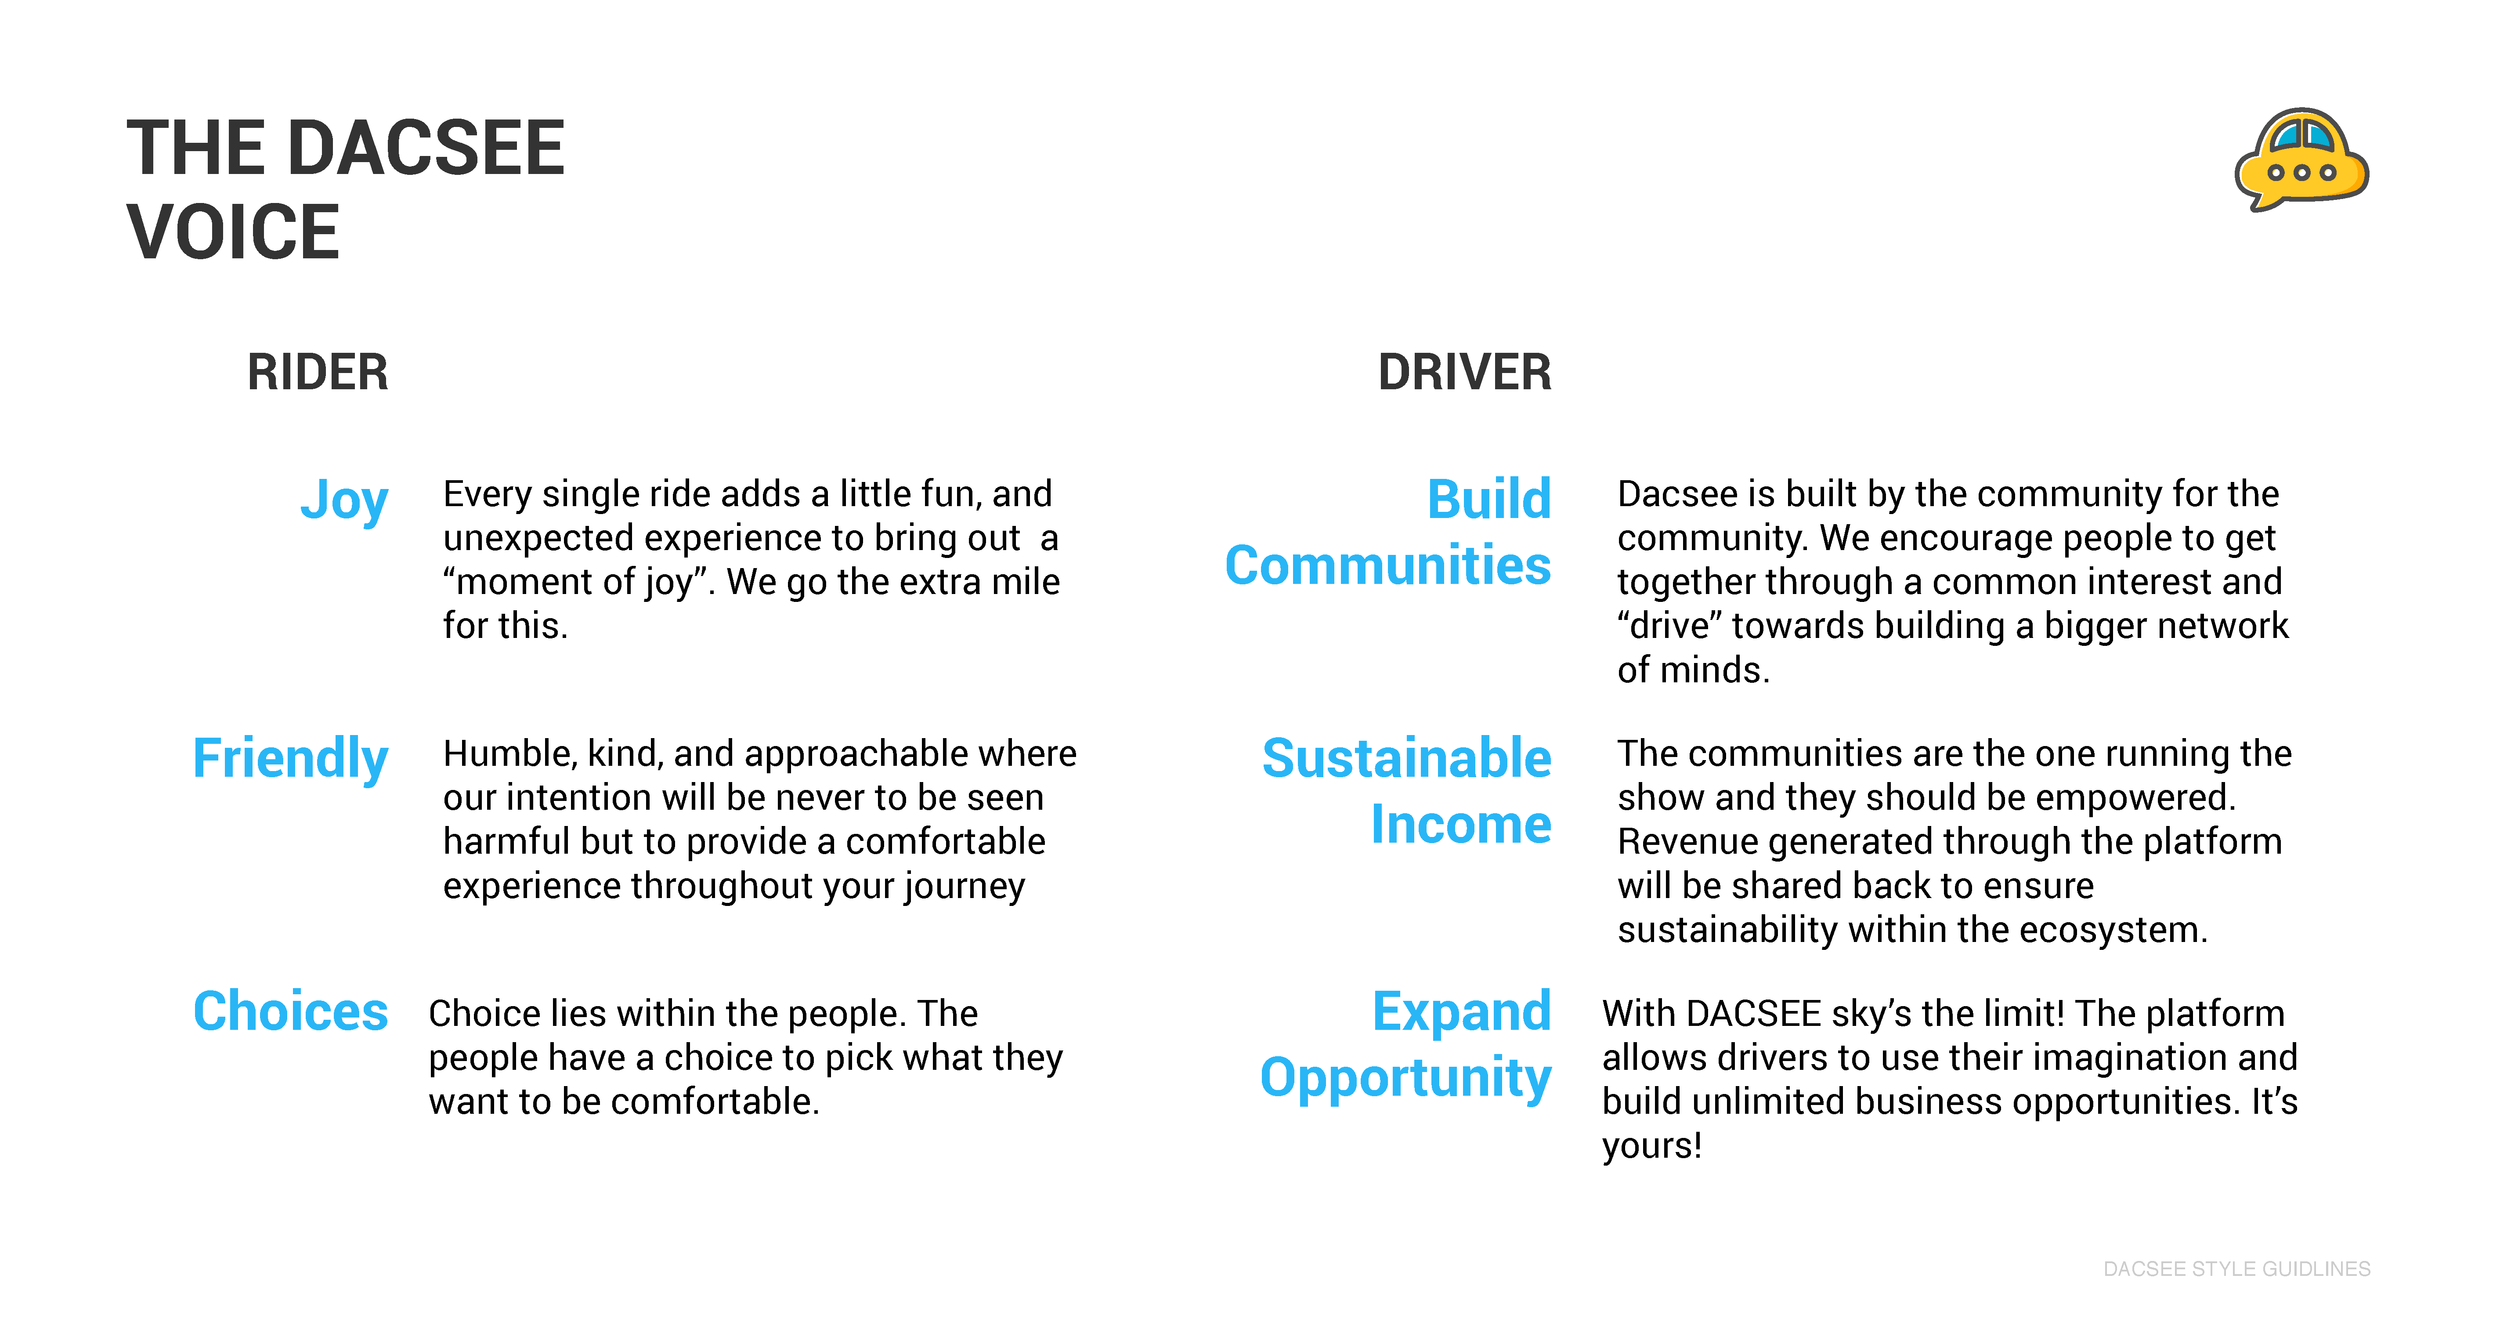 DACSEE_Brand_Guidelines_Page_05.png